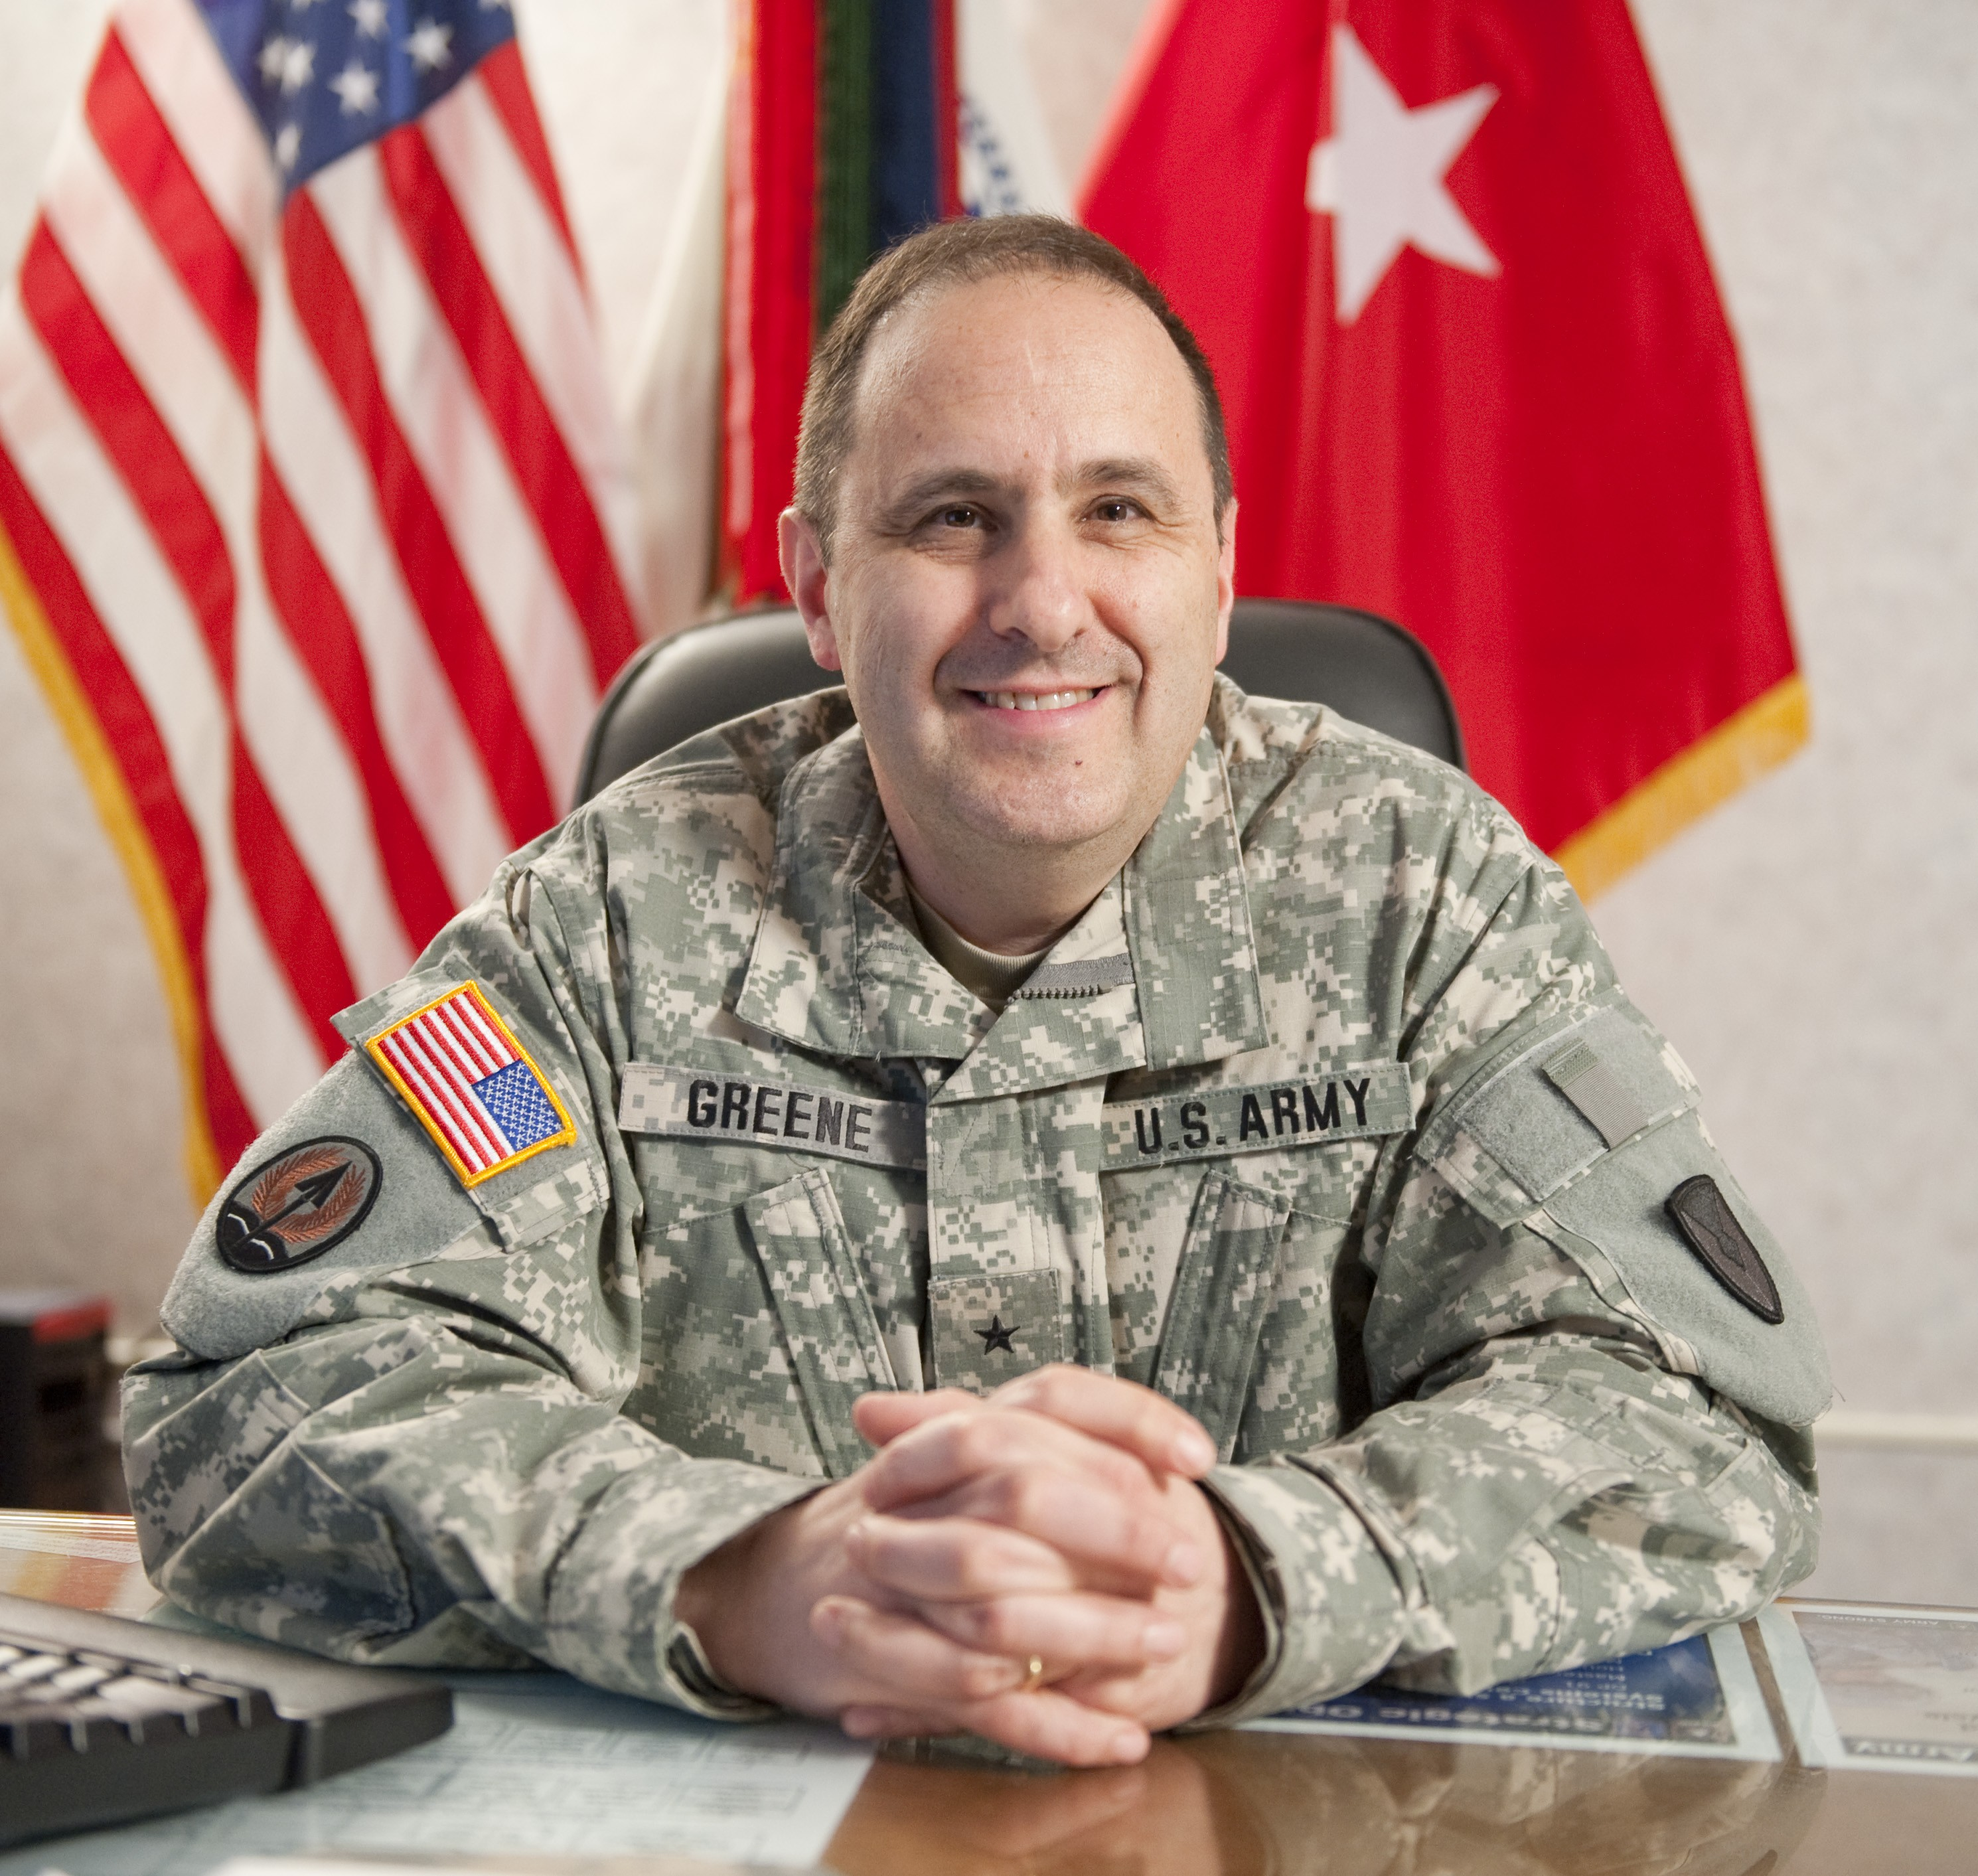 general greene The killing in afghanistan has been met with silence from a key member of the general's chain of command: president obama.